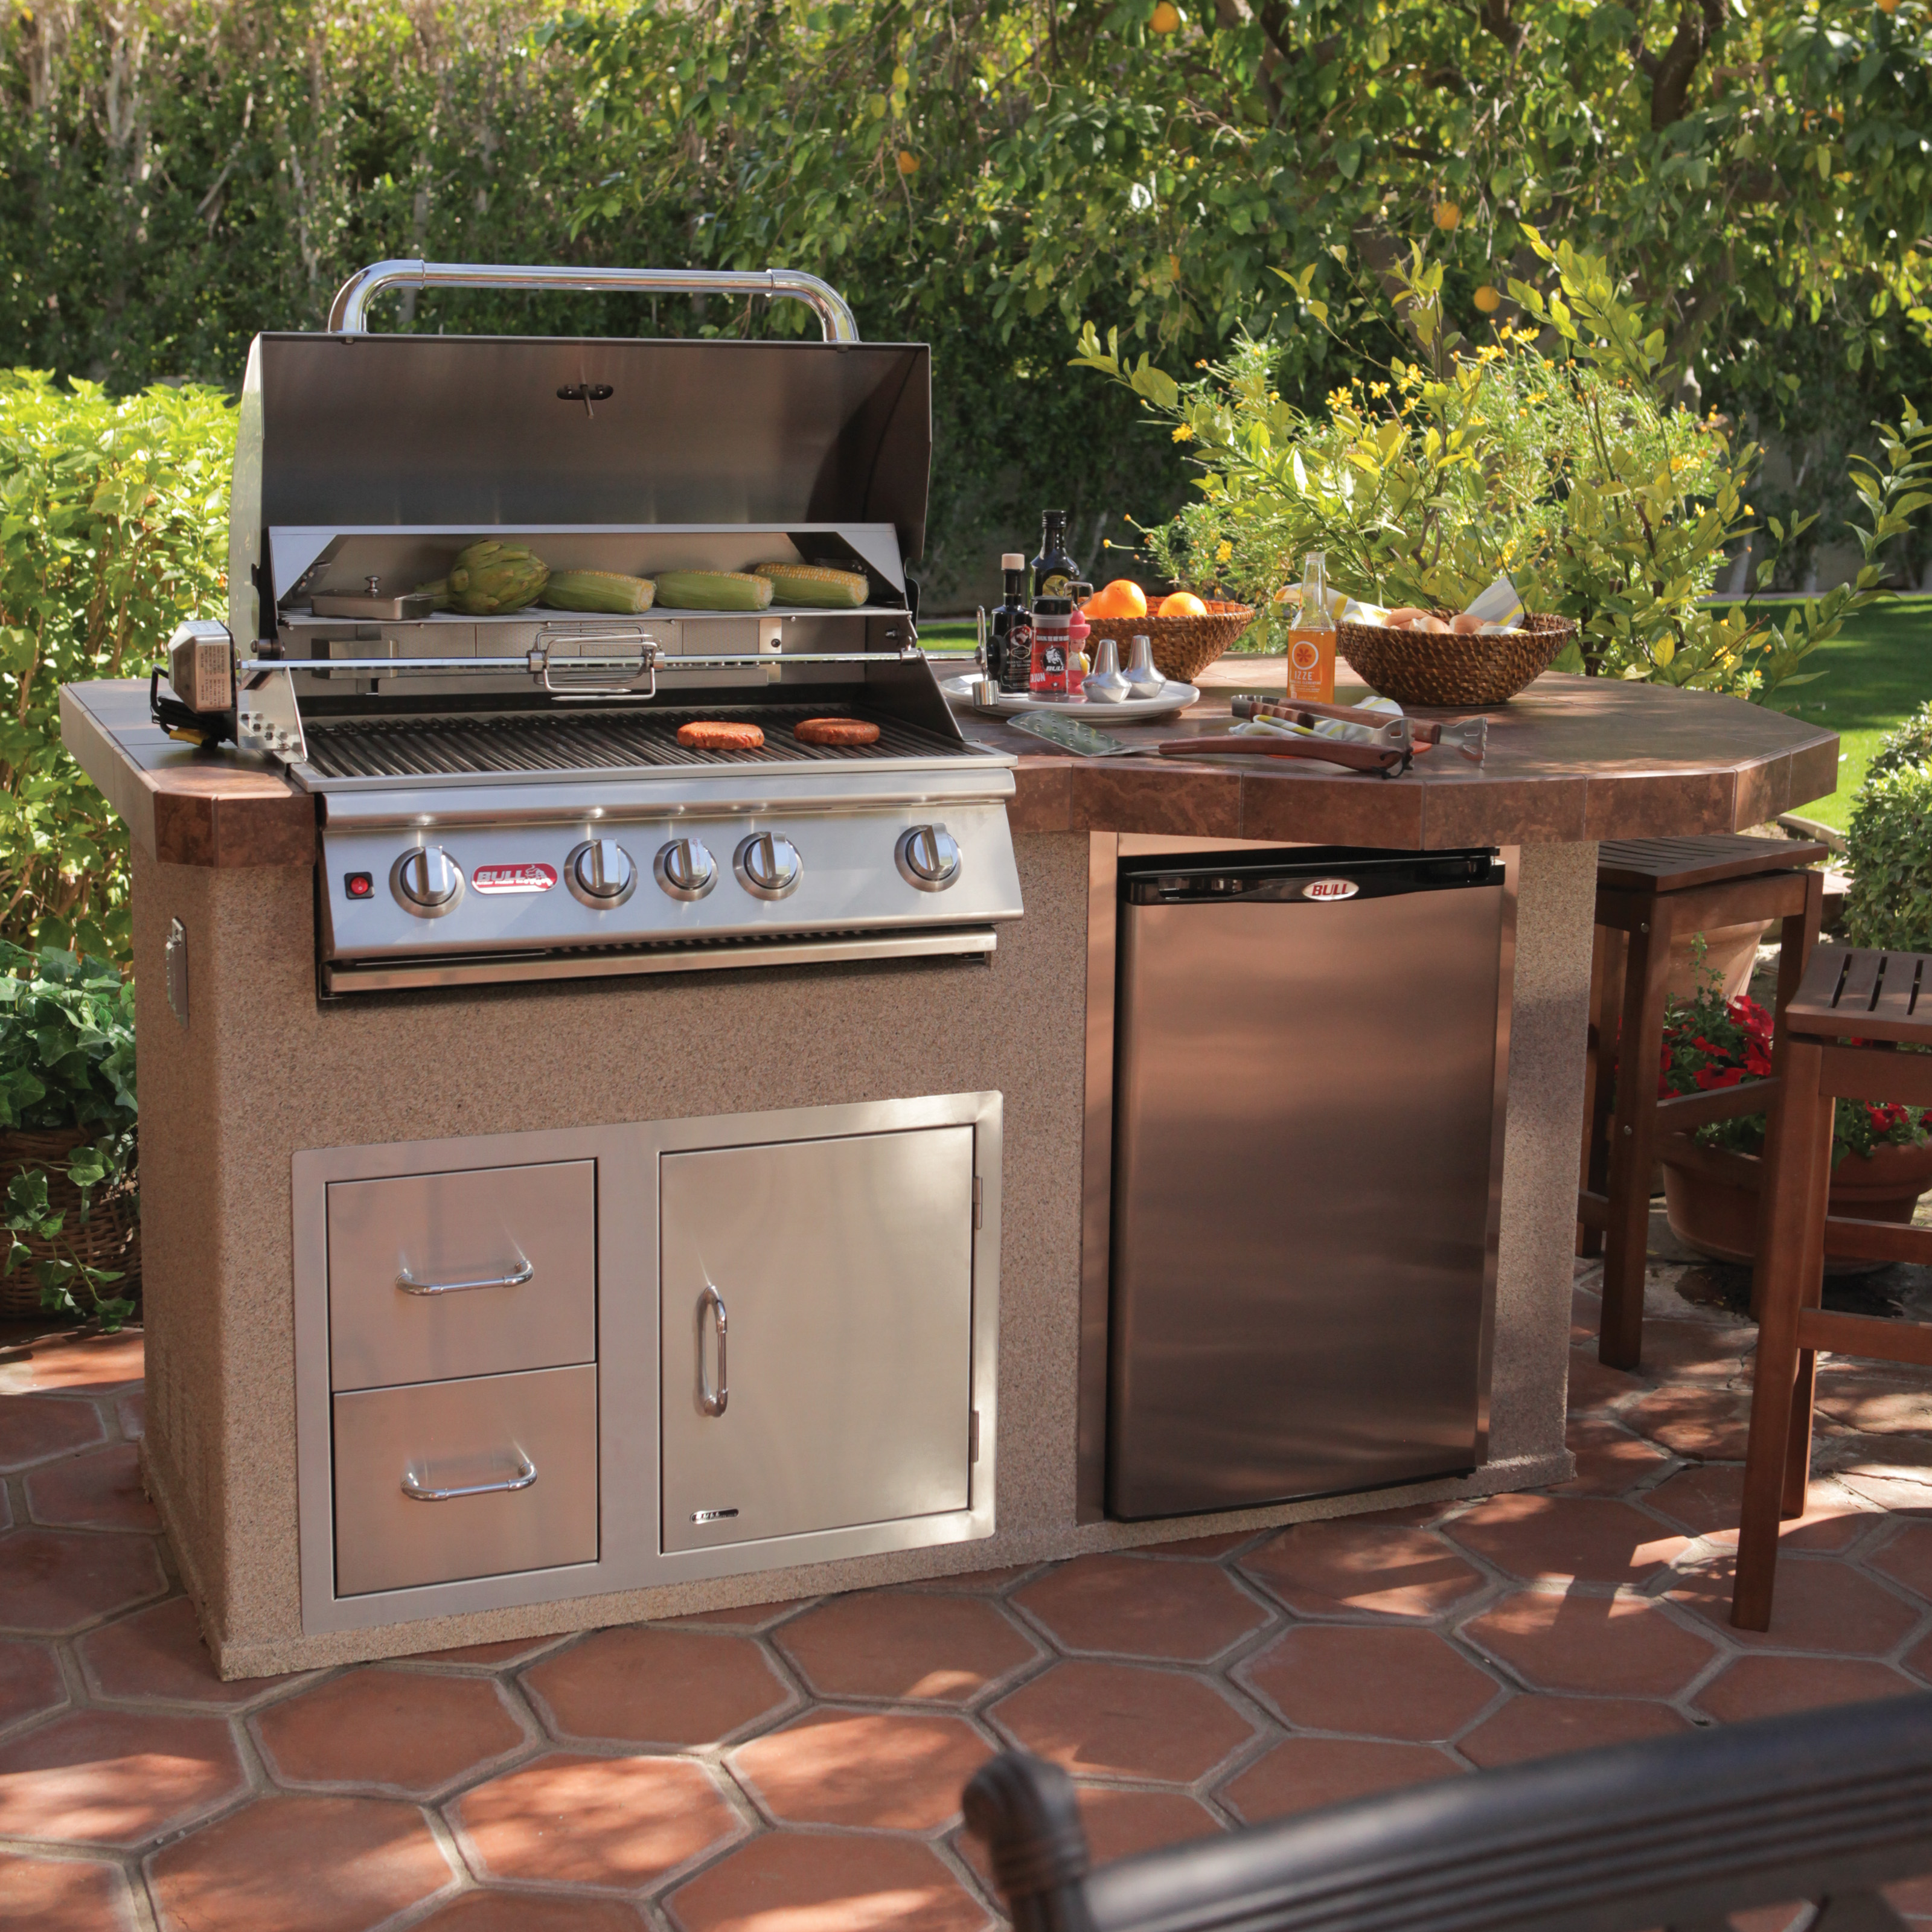 Outdoor Barbecue Kitchen Designs Bull Rodeo Q Grill Island Outdoor Kitchens At Hayneedle